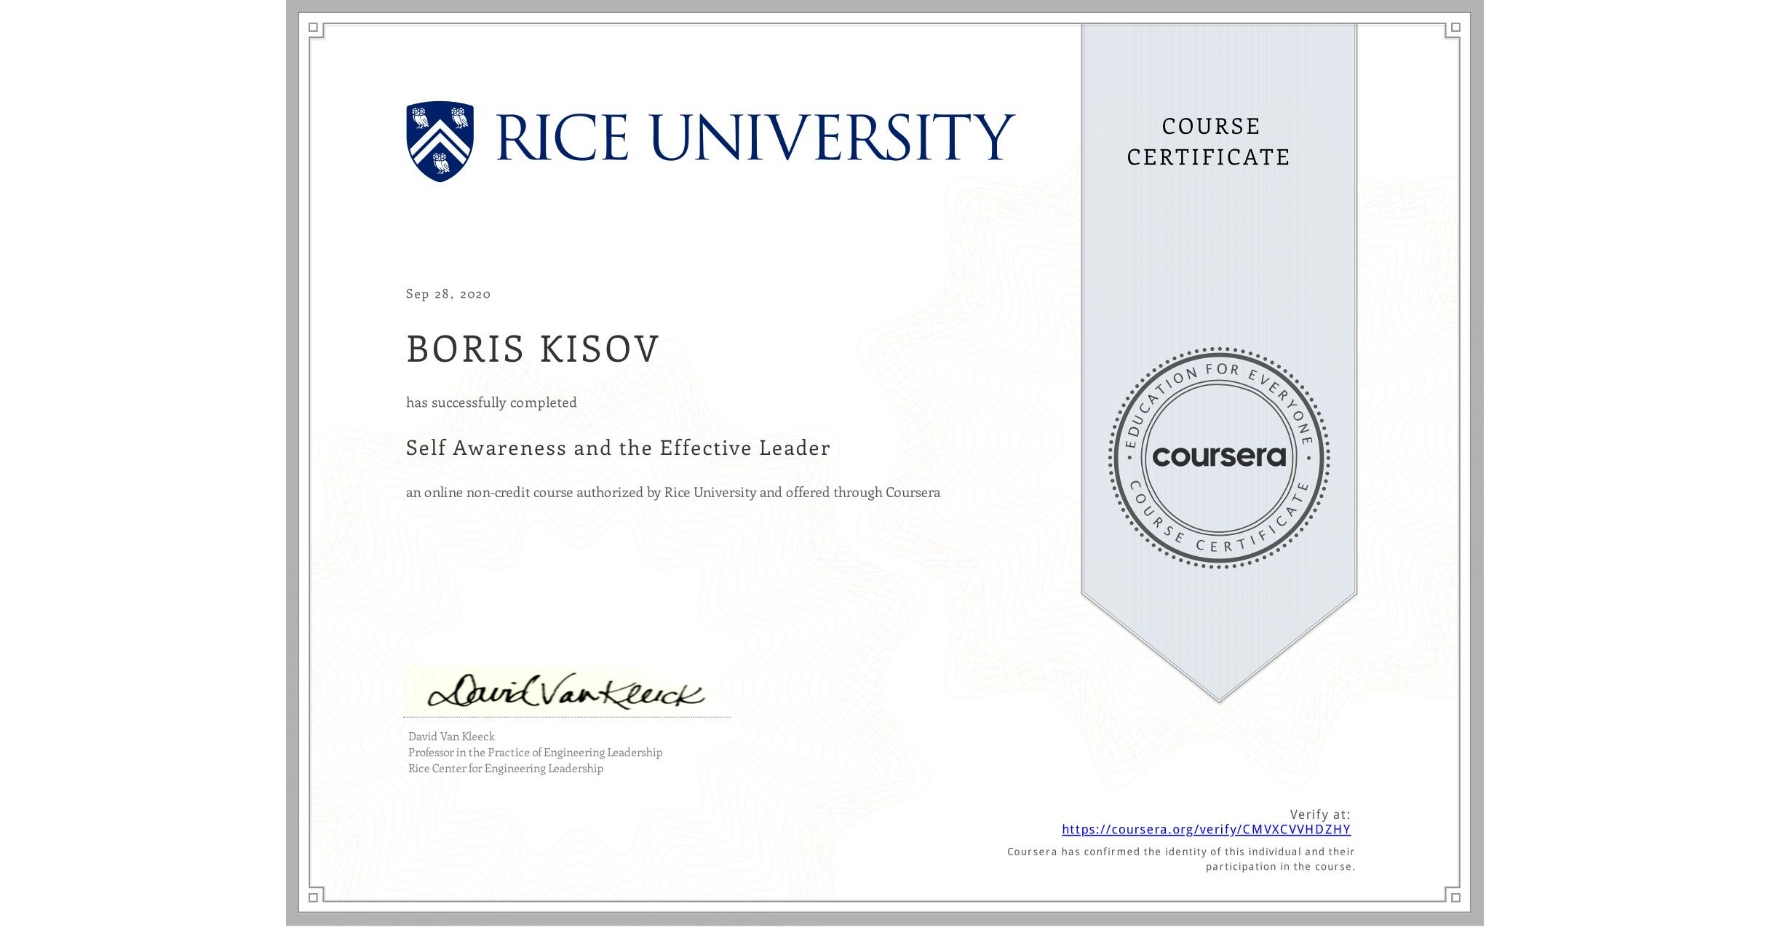 View certificate for BORIS KISOV, Self Awareness and the Effective Leader, an online non-credit course authorized by Rice University and offered through Coursera